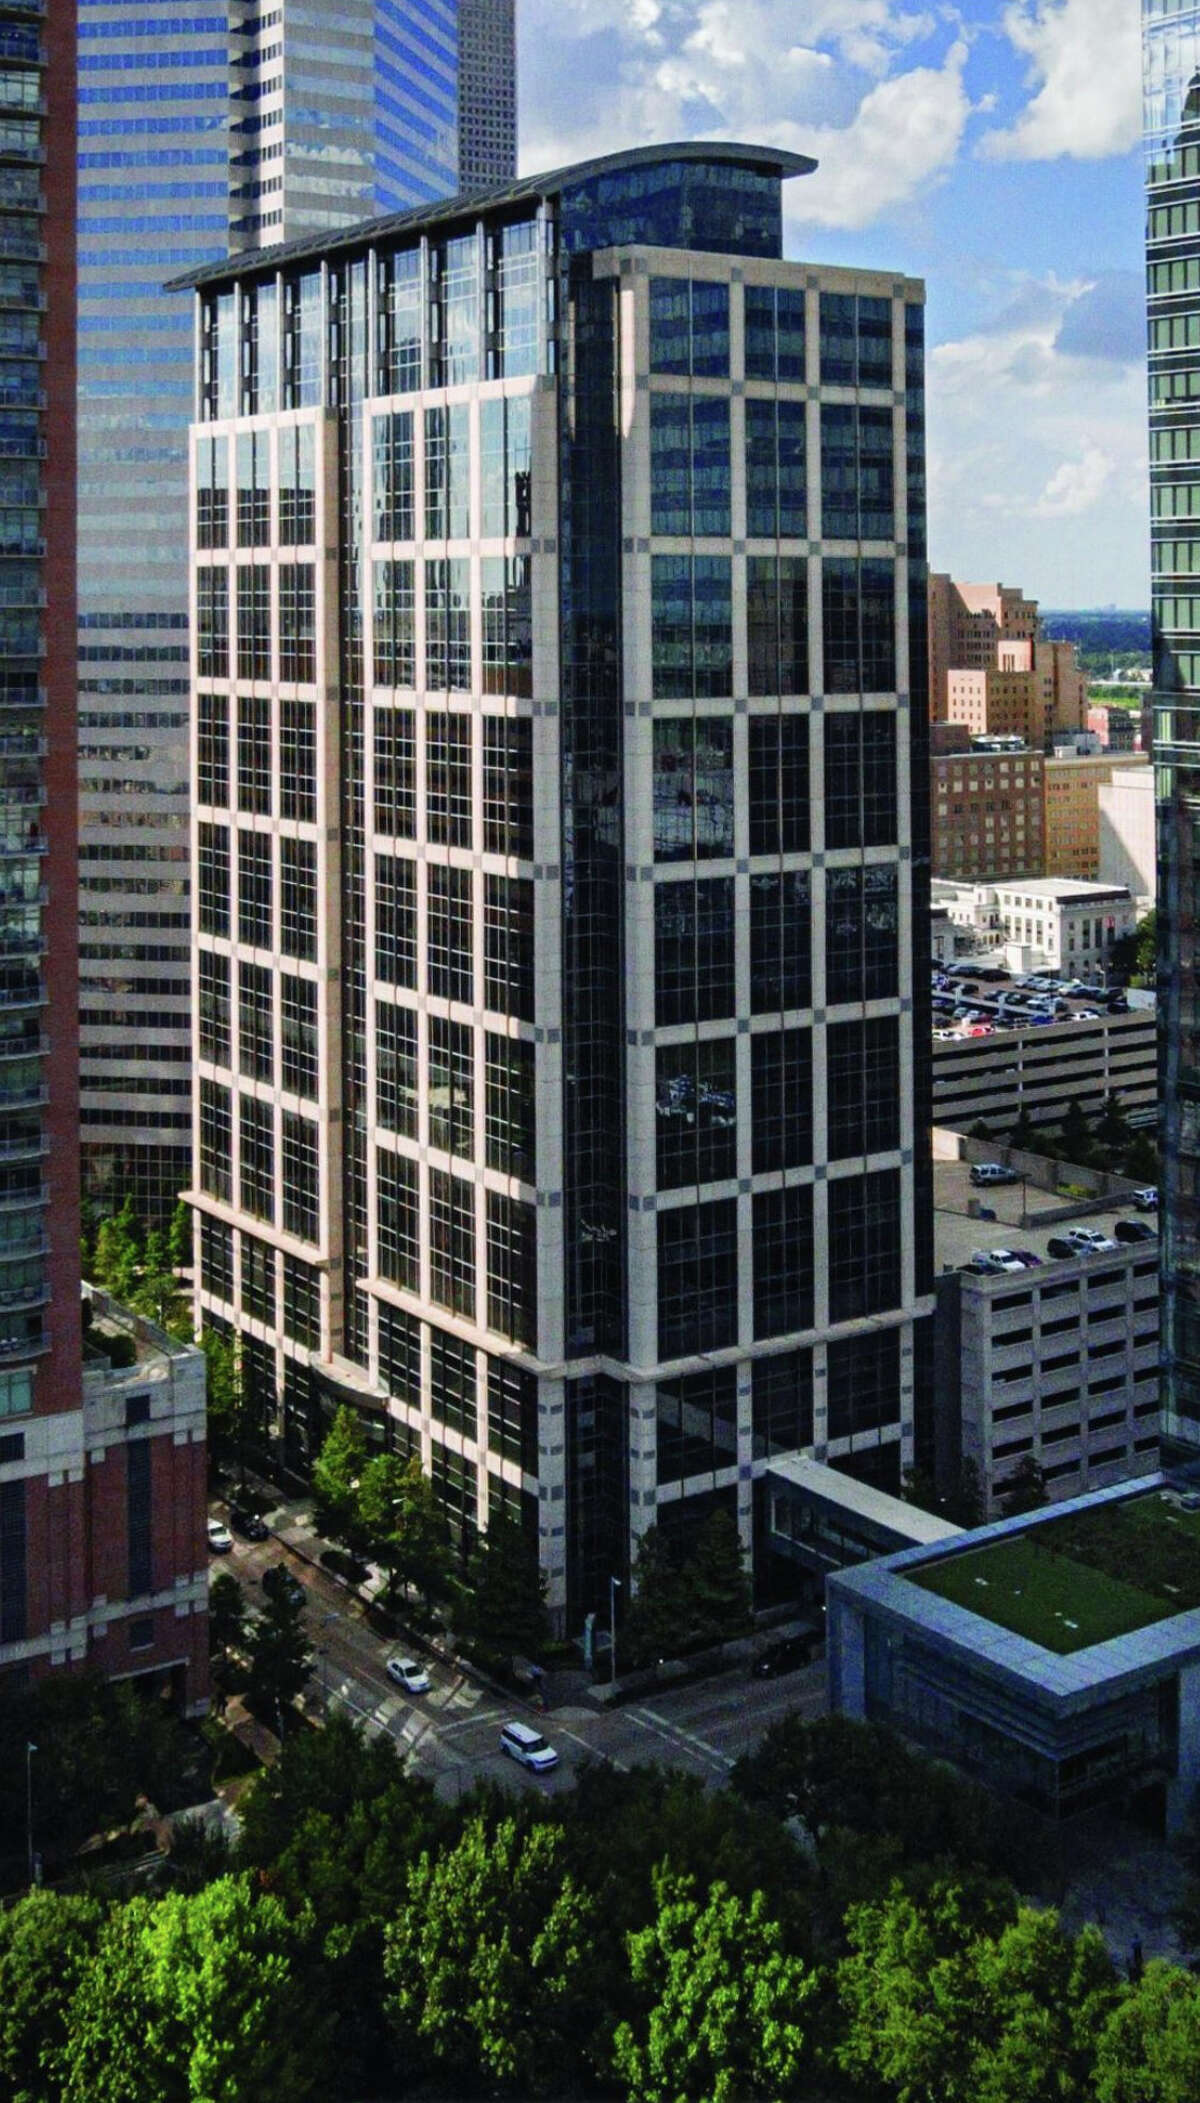 Jackson Walker has leased 77,015 square feet at 5 Houston Center, located at 1401 McKinney, Transwestern announced.